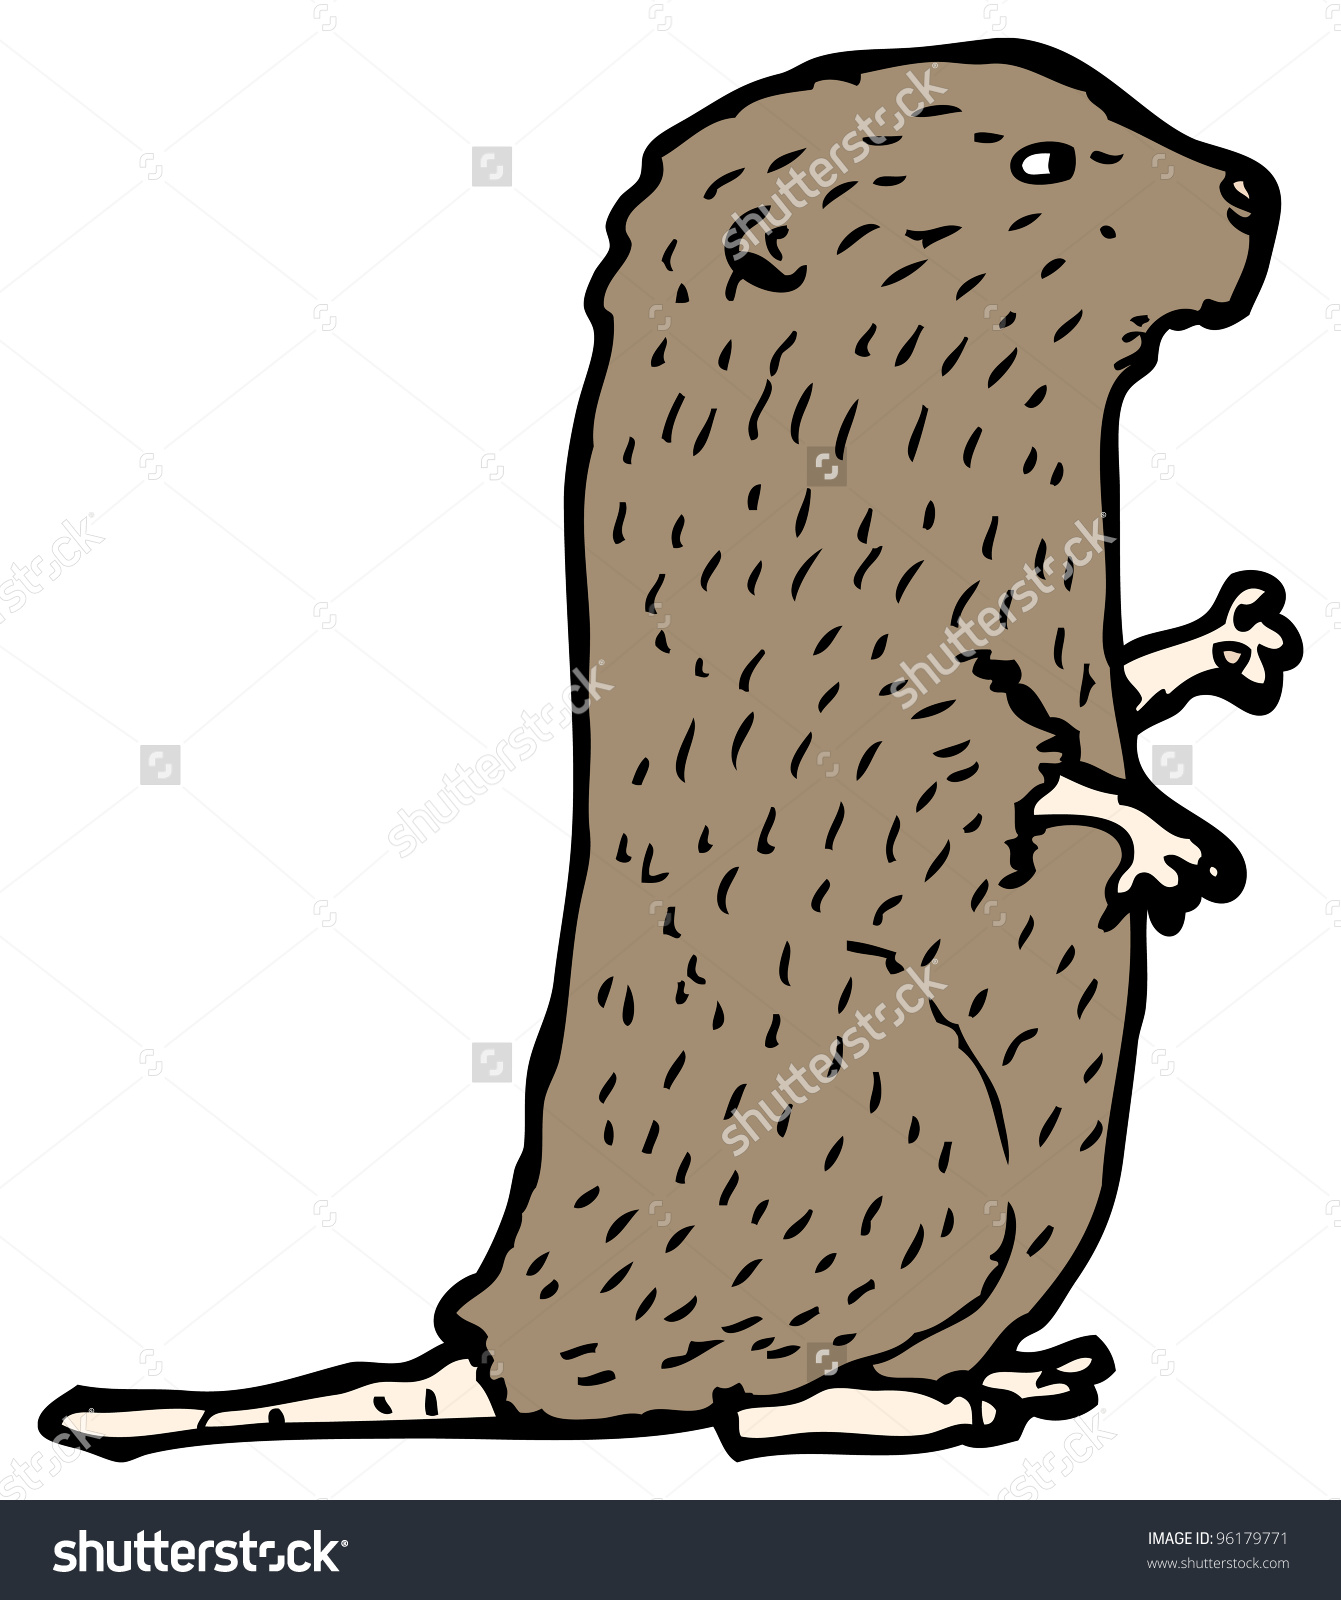 Vole clipart #4, Download drawings